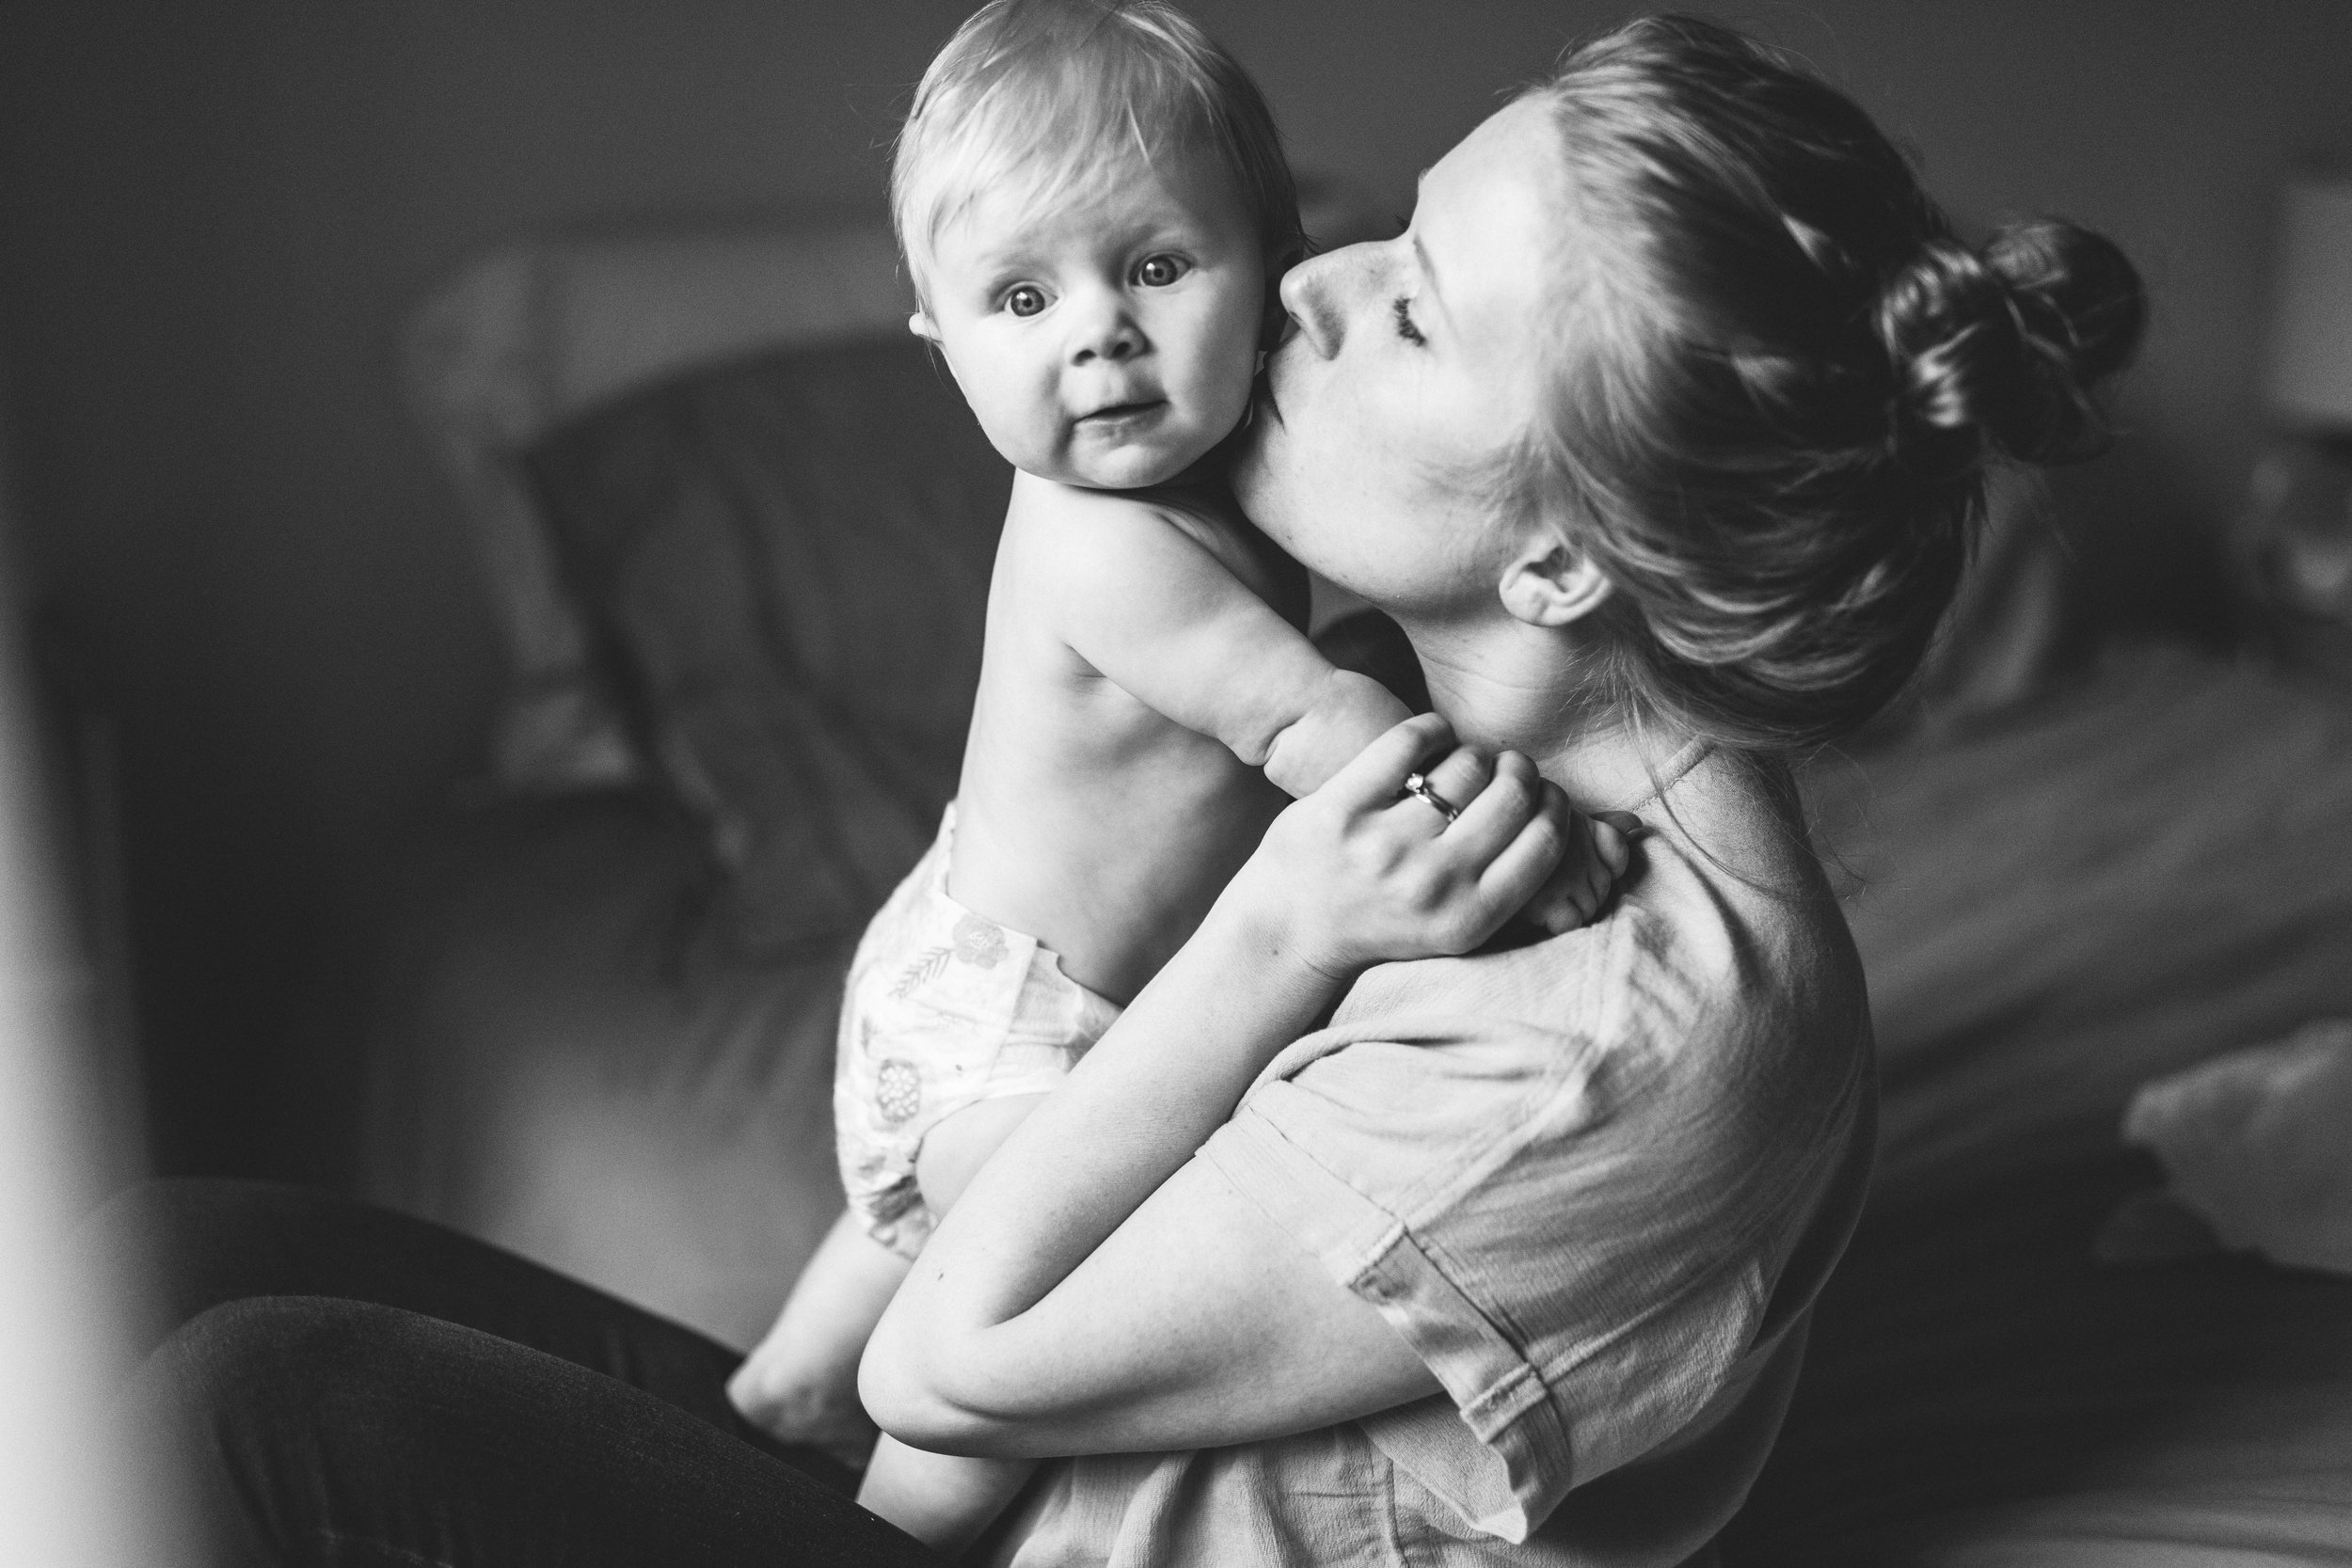 Soulful and intimate Kirkland home photography session with mother and daughter by Seattle photographer Chelsea Macor Photography #seattlefamilyphotographer #kirklandfamilyphotographer #bellevuefamilyphotographer